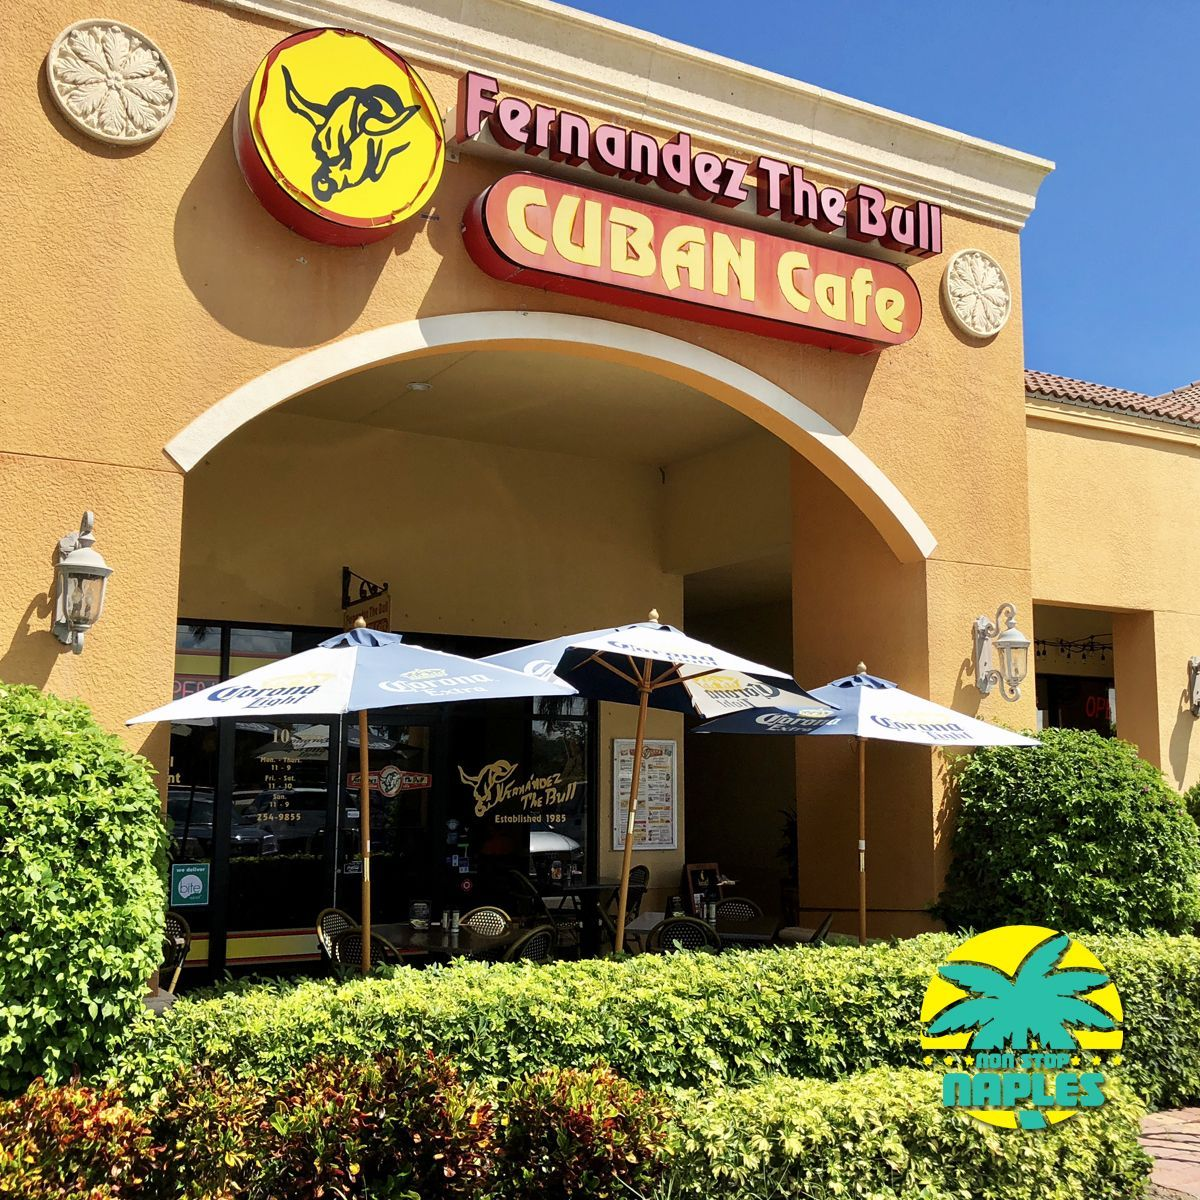 Fernandez The Bull Cuban Cafe North Naples Original Restaurant Serving Authentic Food For Over 30 Years Definitely Check It Out